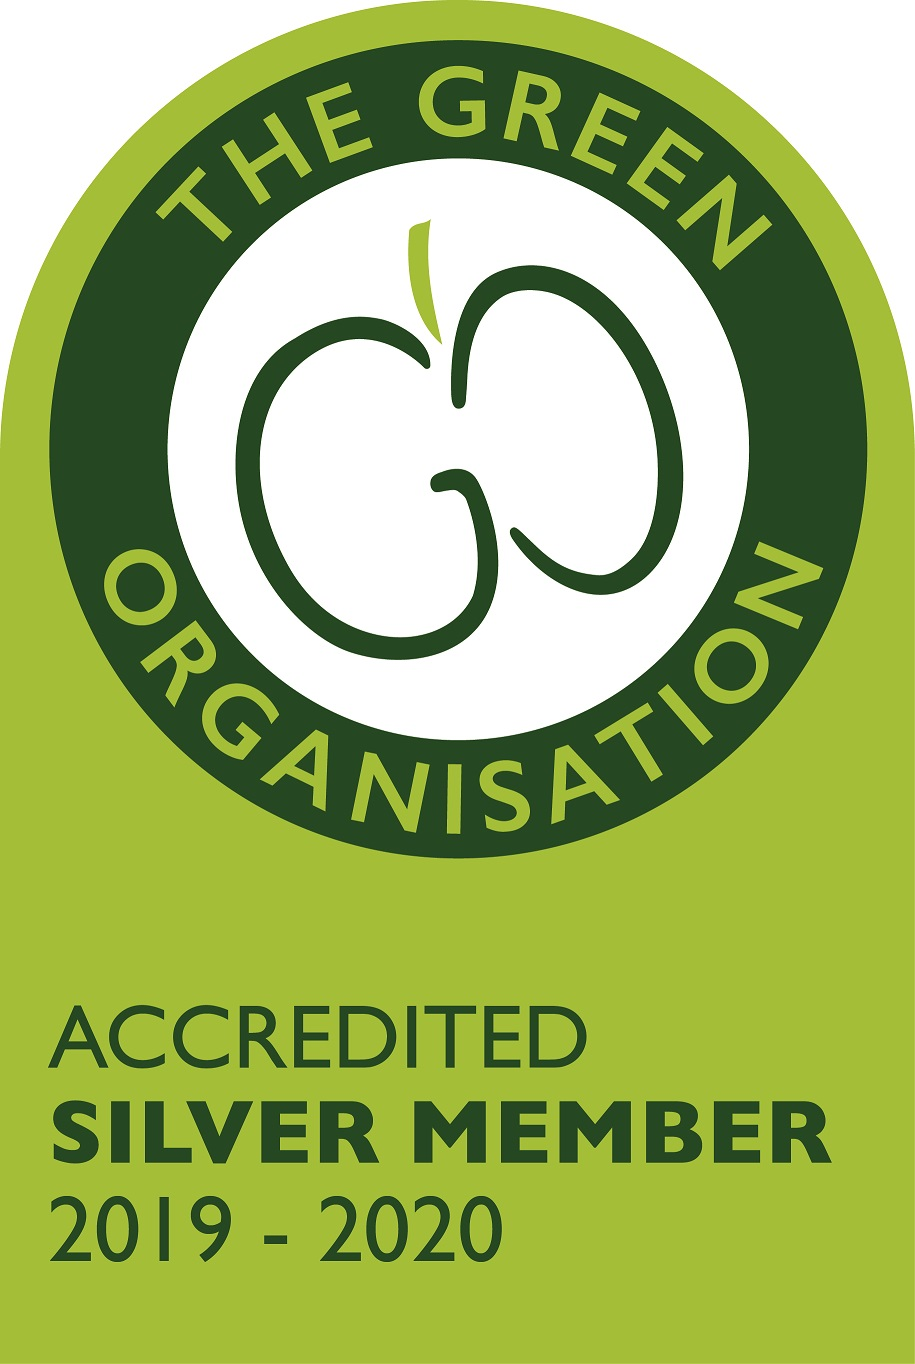 The Green Organisation Silver Membership